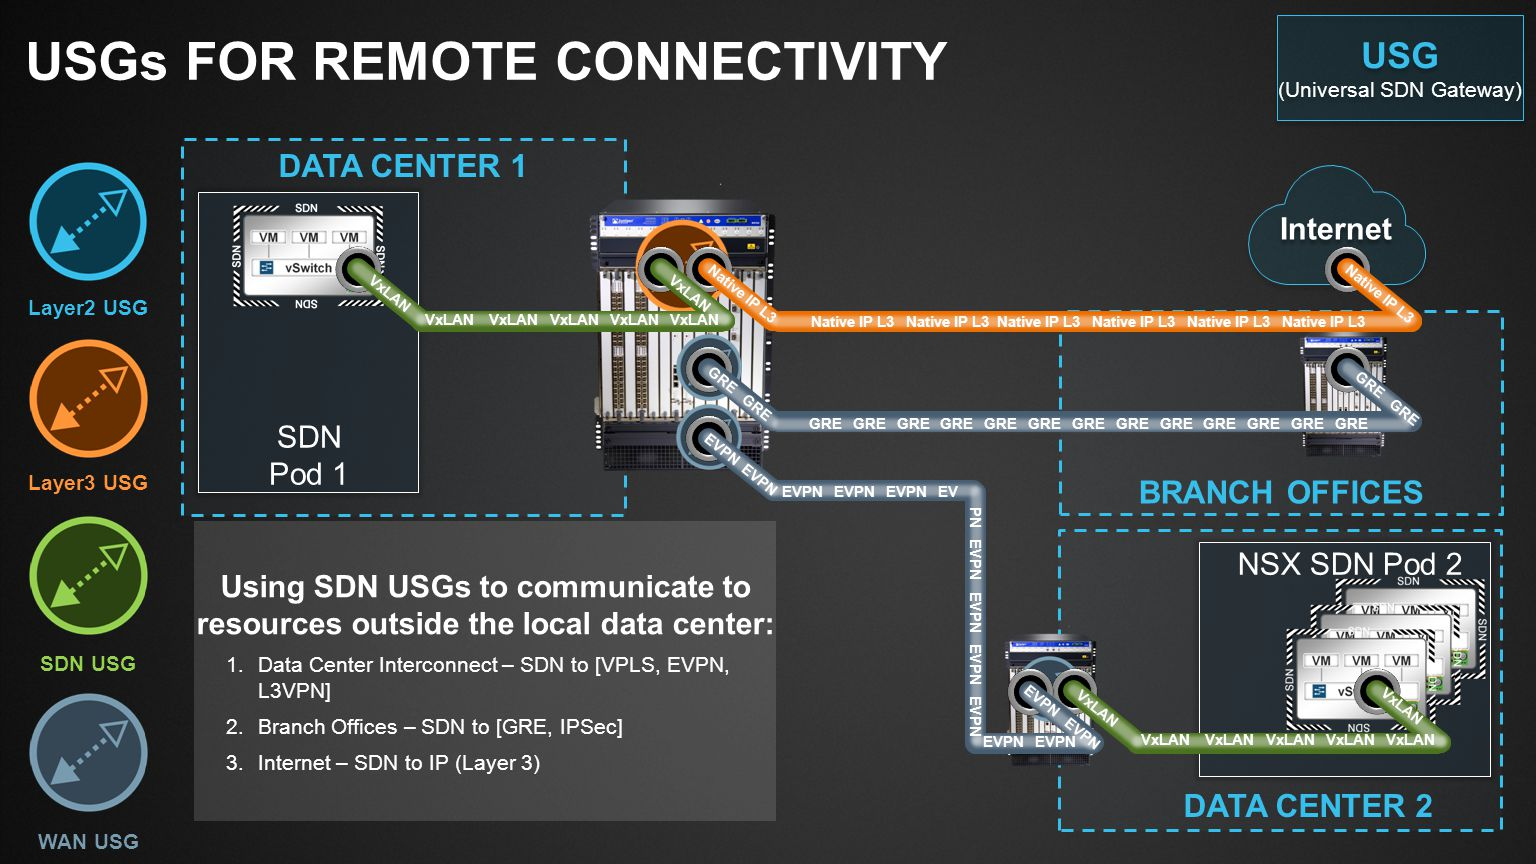 USGs for remote connectivity